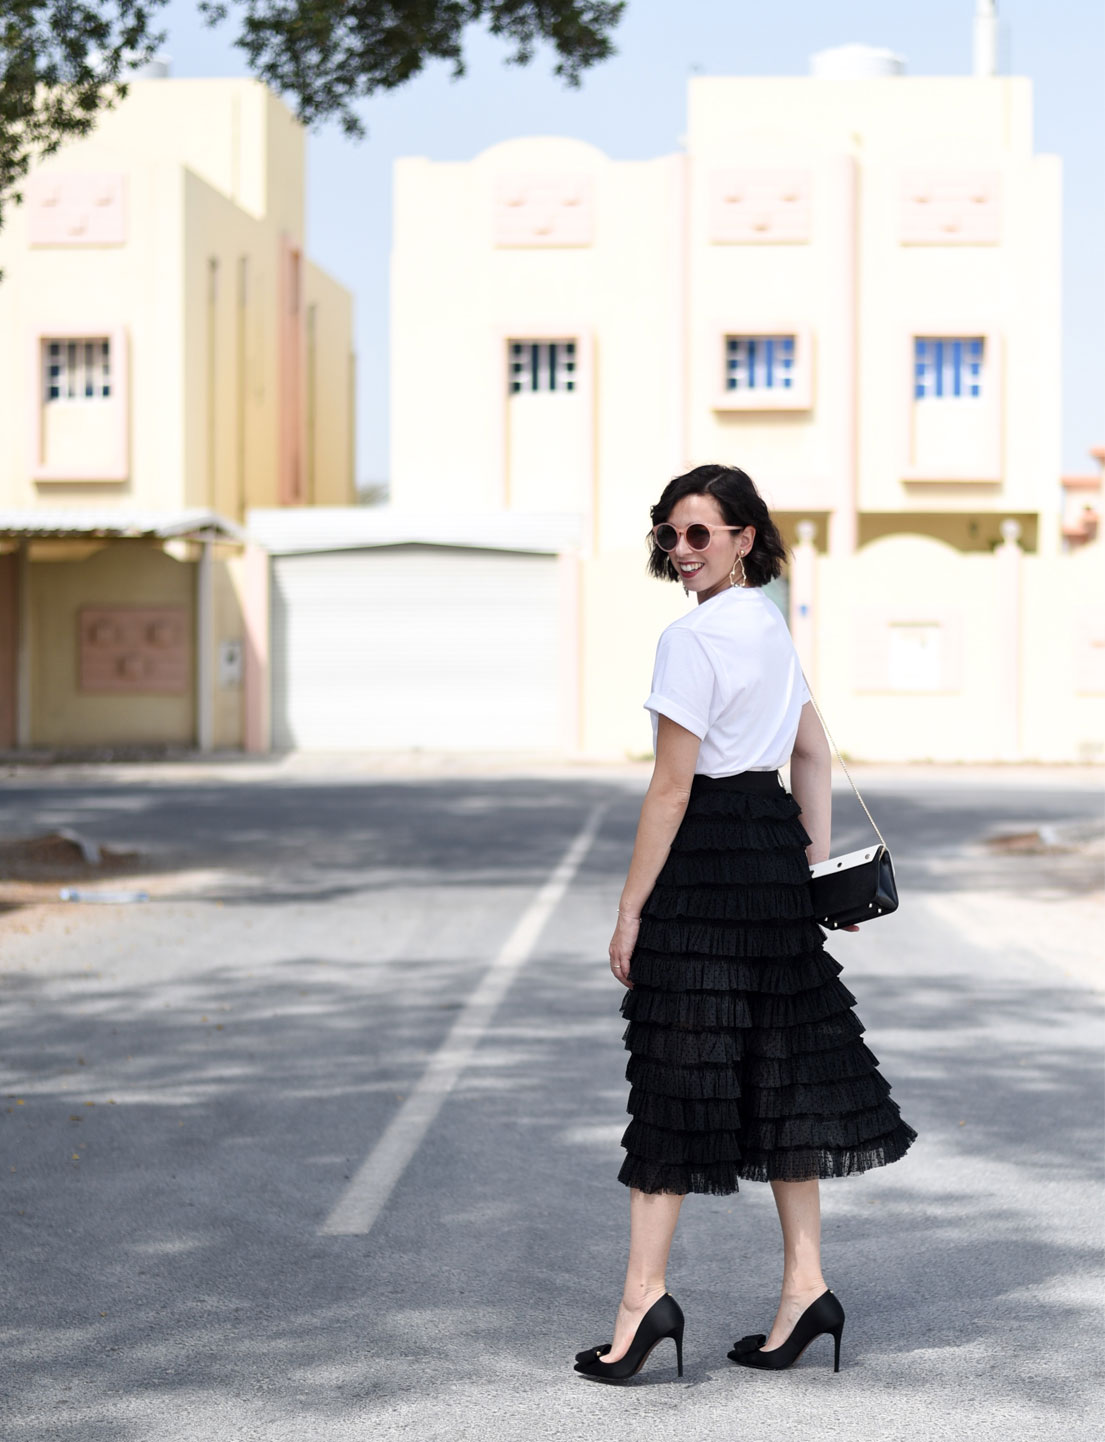 Tulle Skirt + Sporty T-Shirt